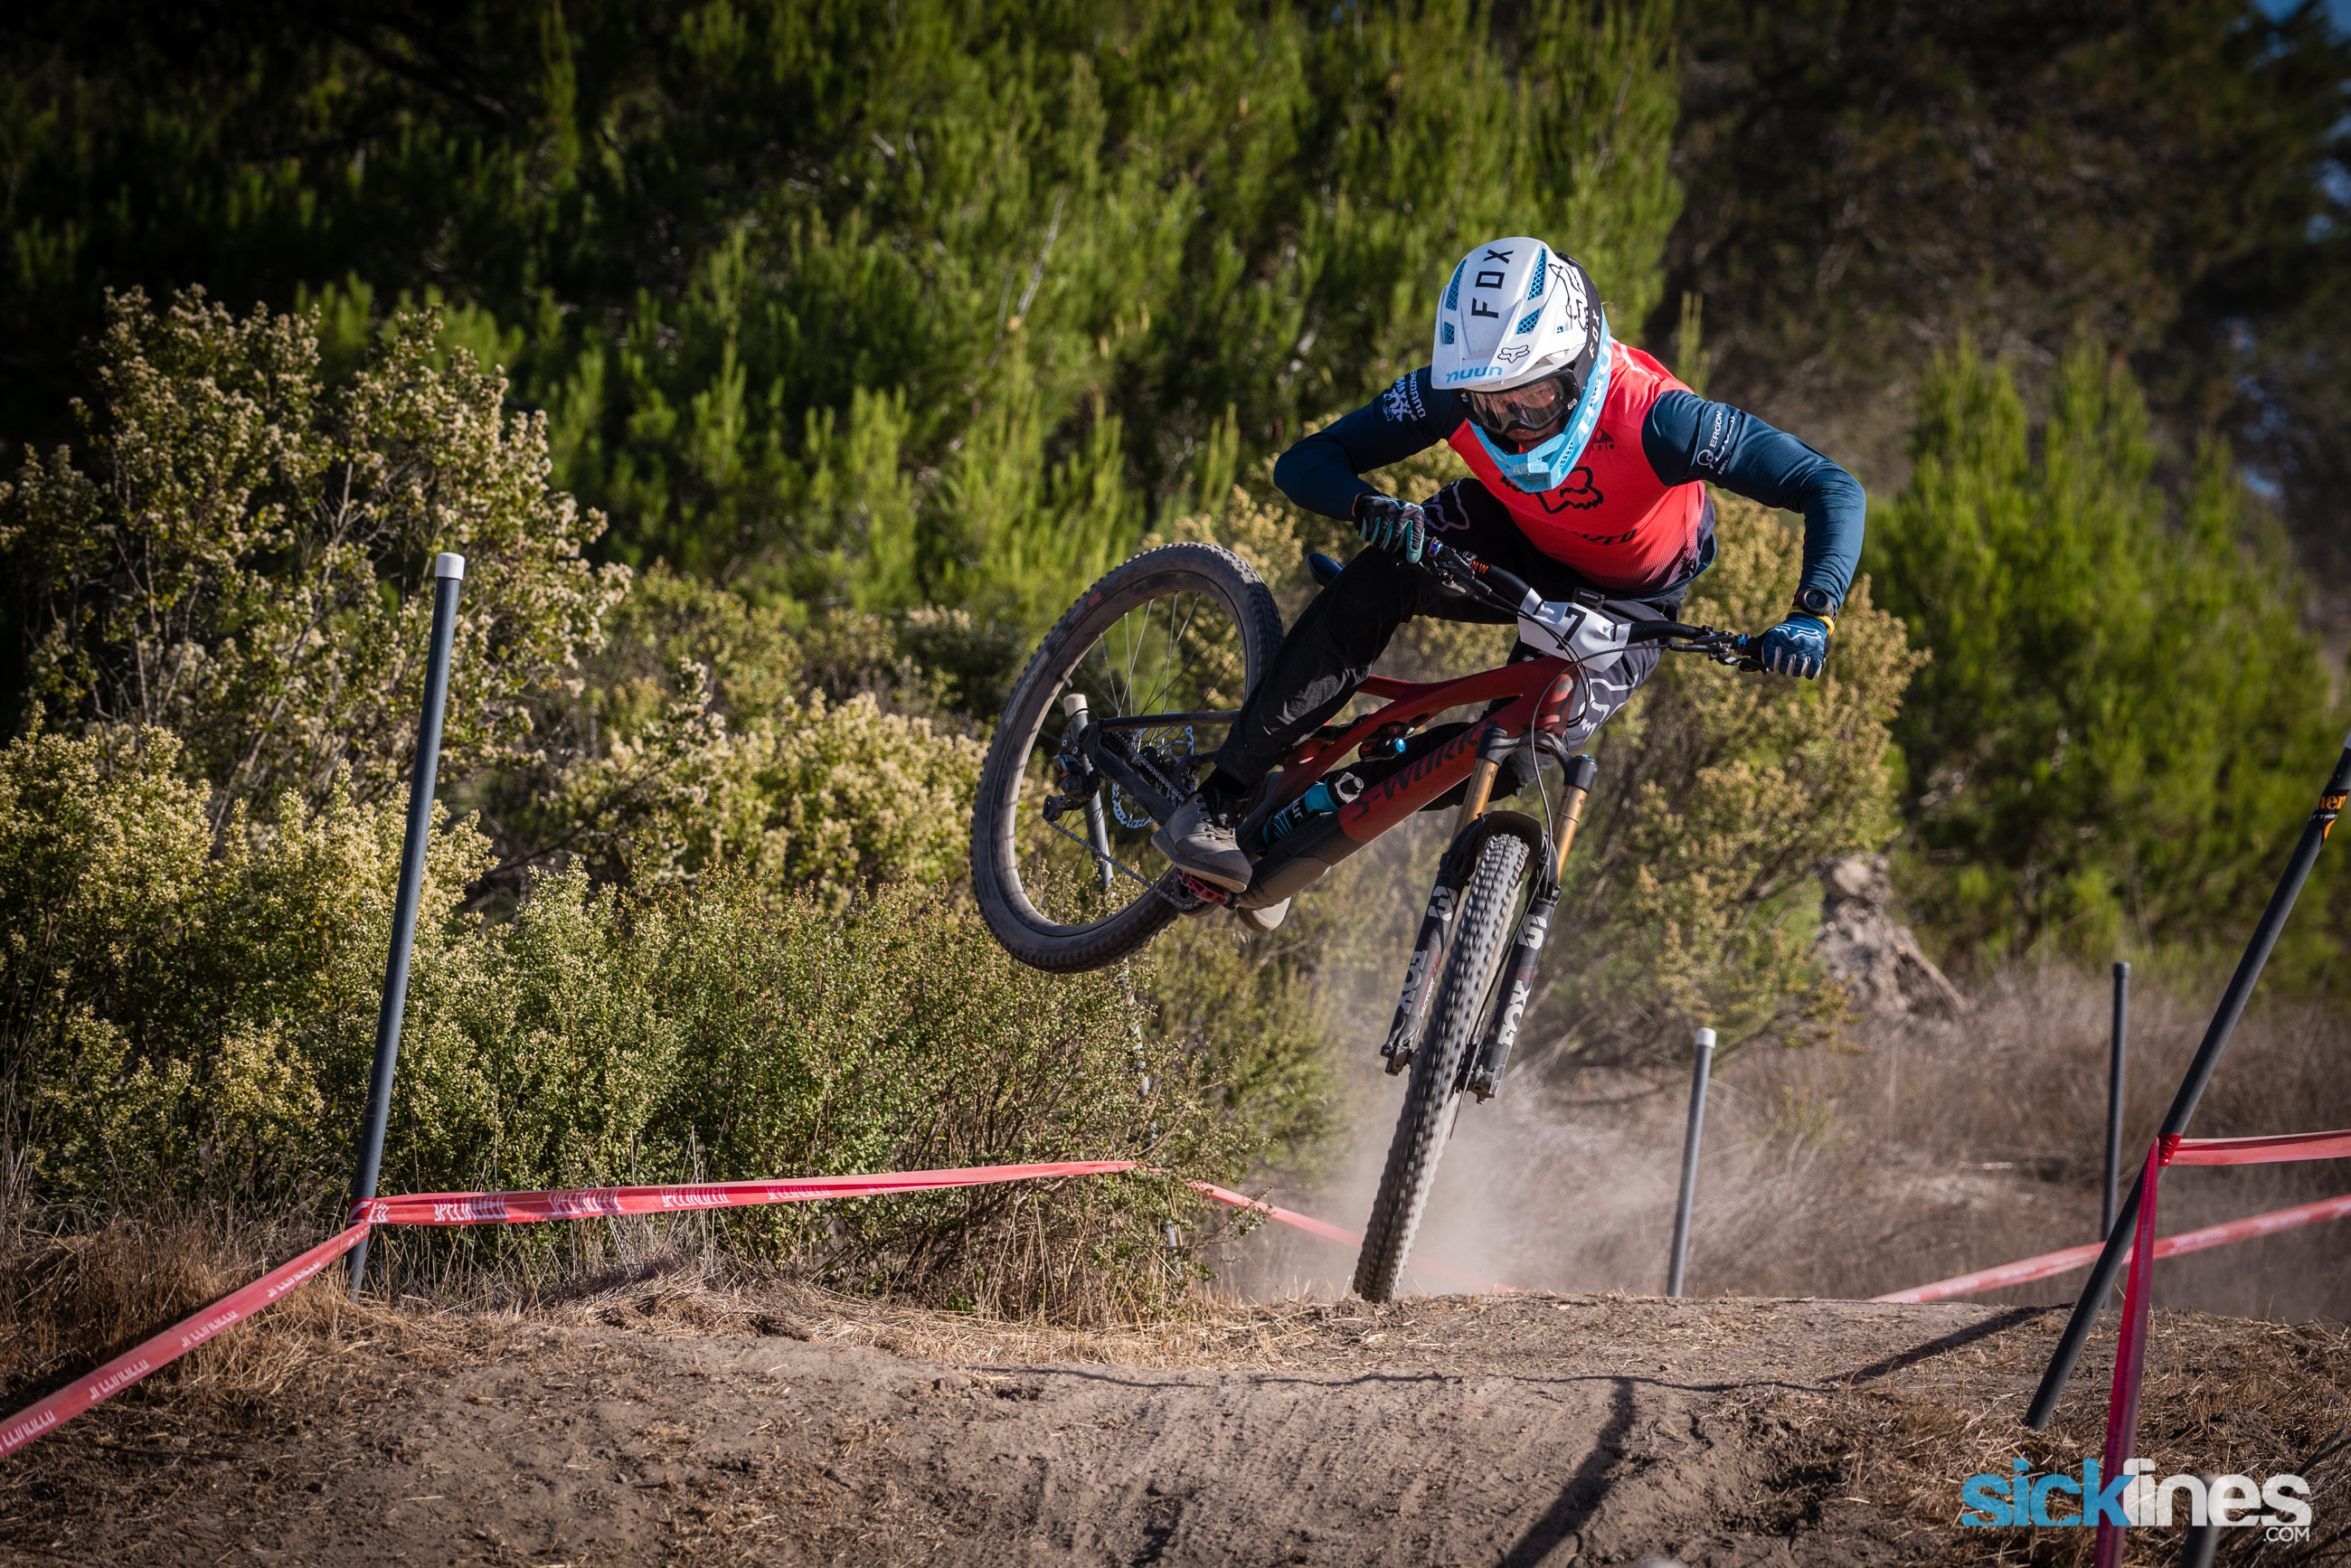 Cody Kelley and Amy Morrison Win The 2021 Sea Otter Downhill Race, Cody Kelley and Amy Morrison Win The 2021 Sea Otter Downhill Race